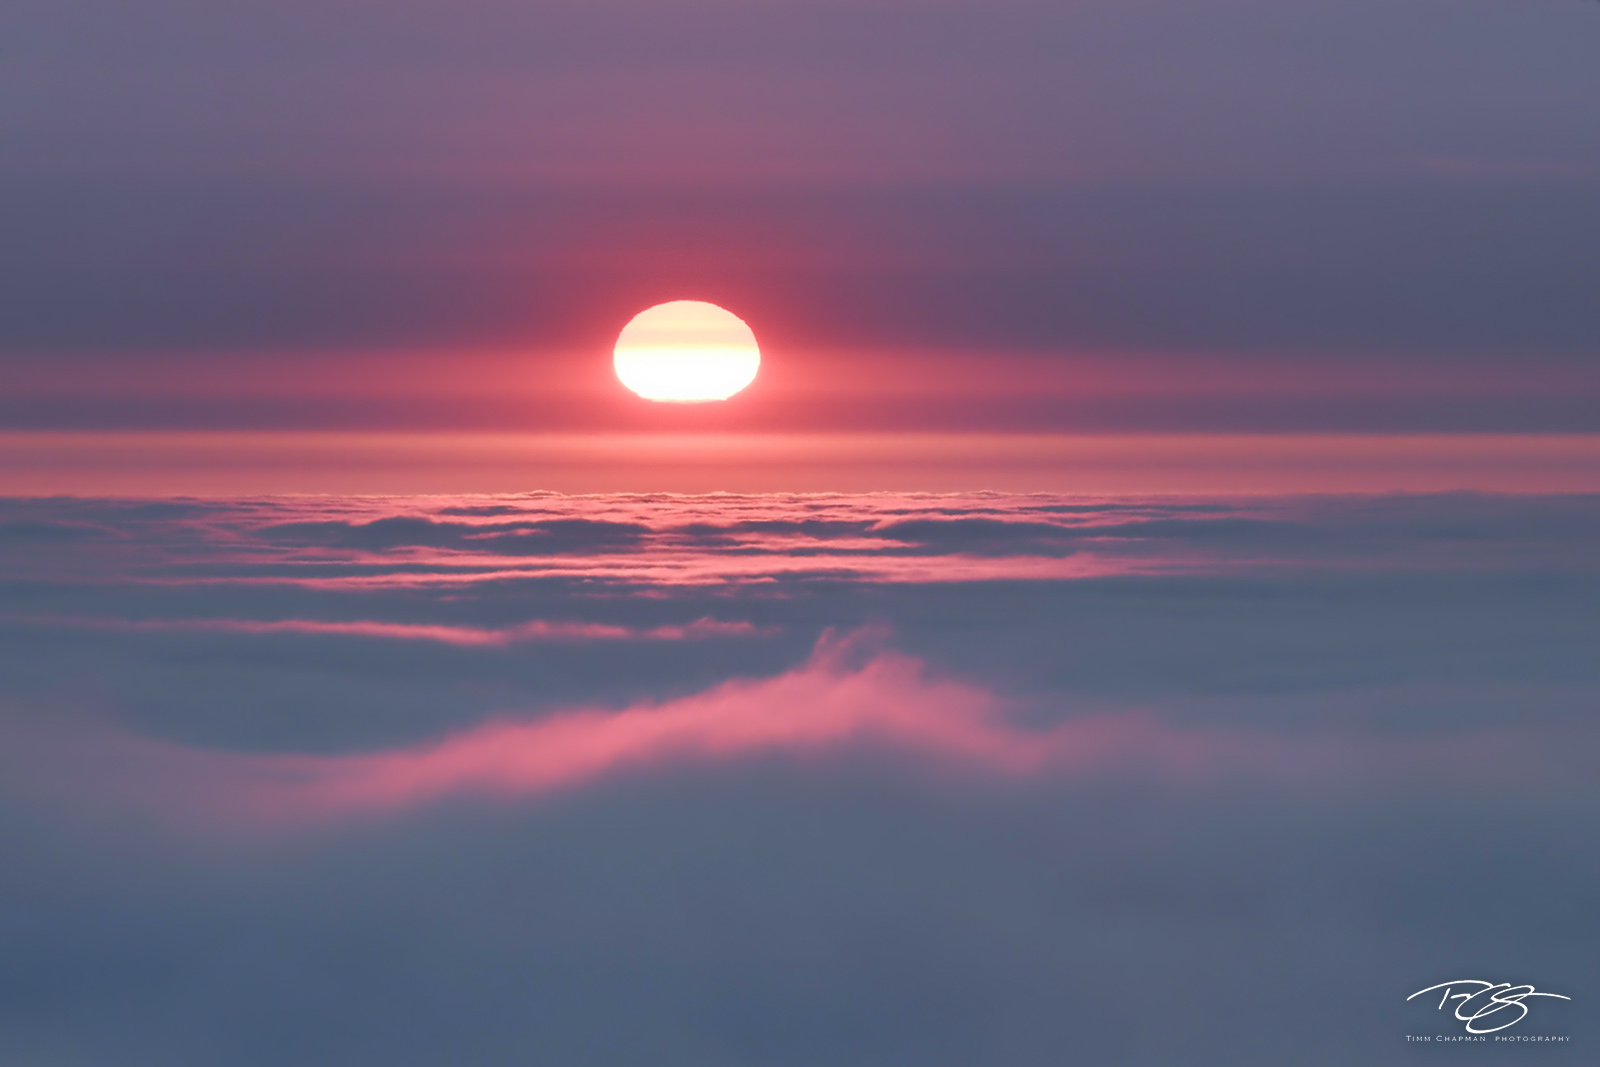 sunset, pink, pastel, pacific, ocean, fog, foggy, inversion, layer, melt, photo